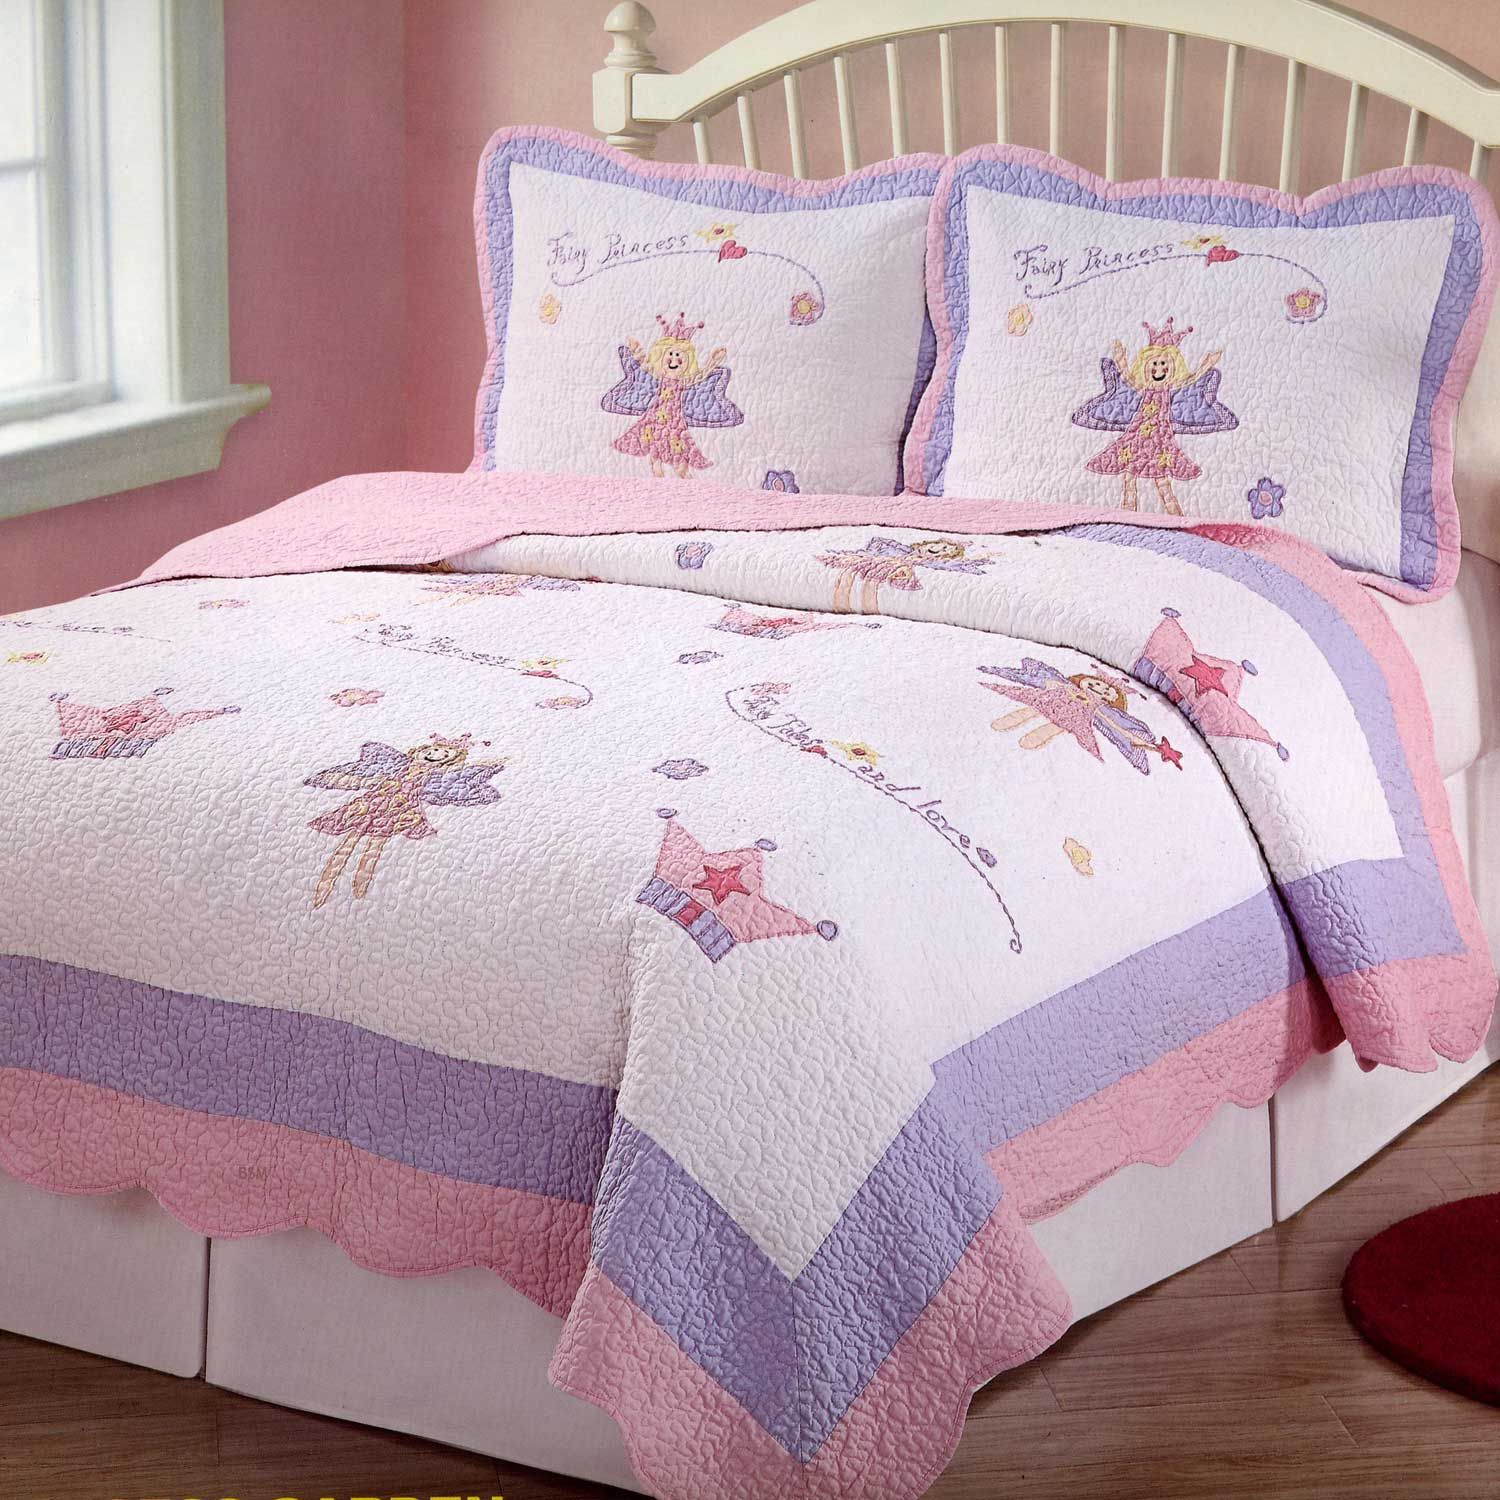 double bedspread for bedding comforter summer peach sets coral